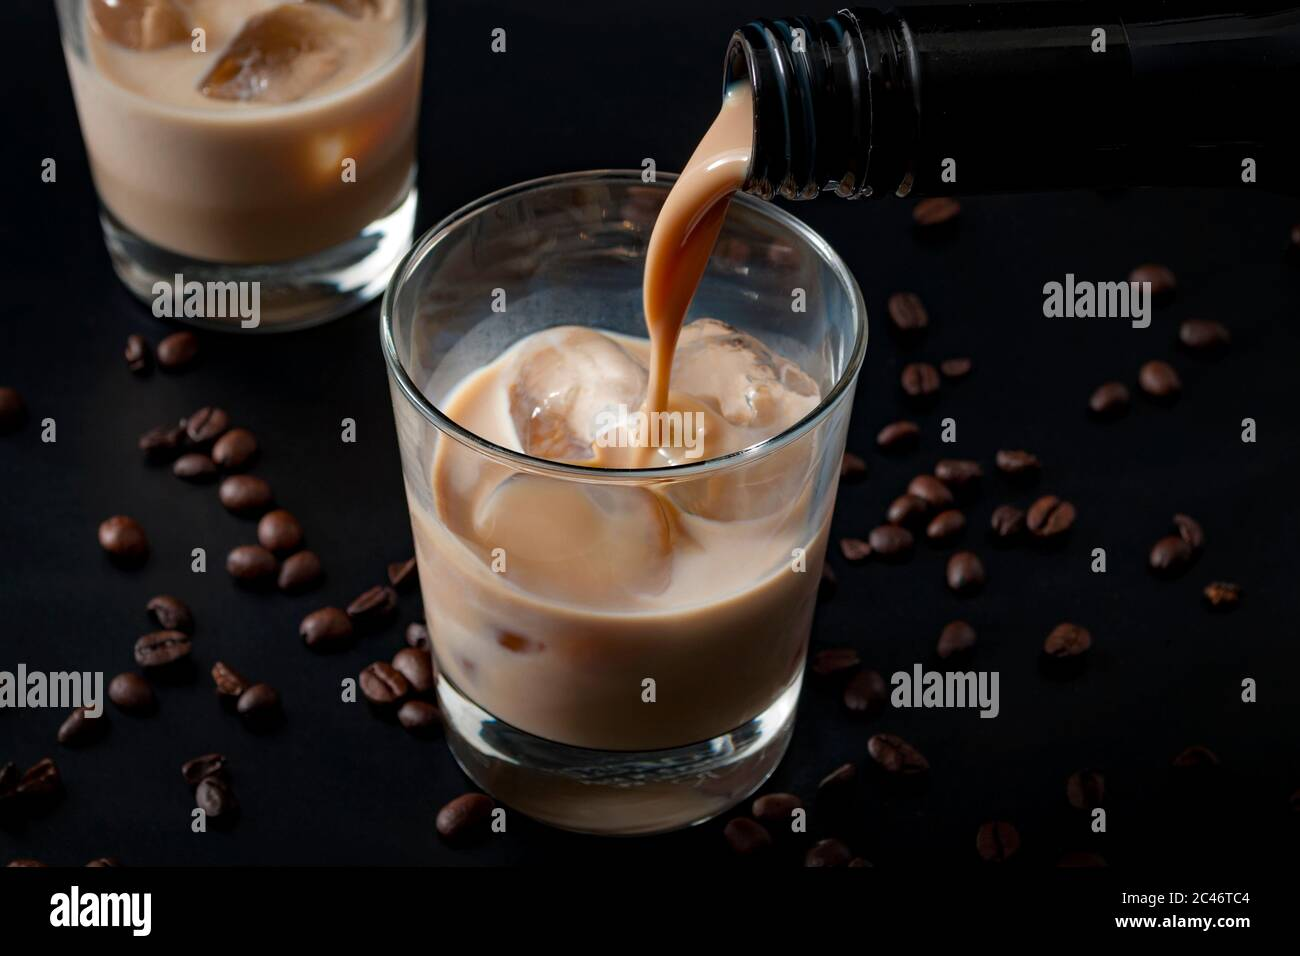 Pouring irish cream in a glass with ice, surrounded by coffee beans on a dark black background Stock Photo